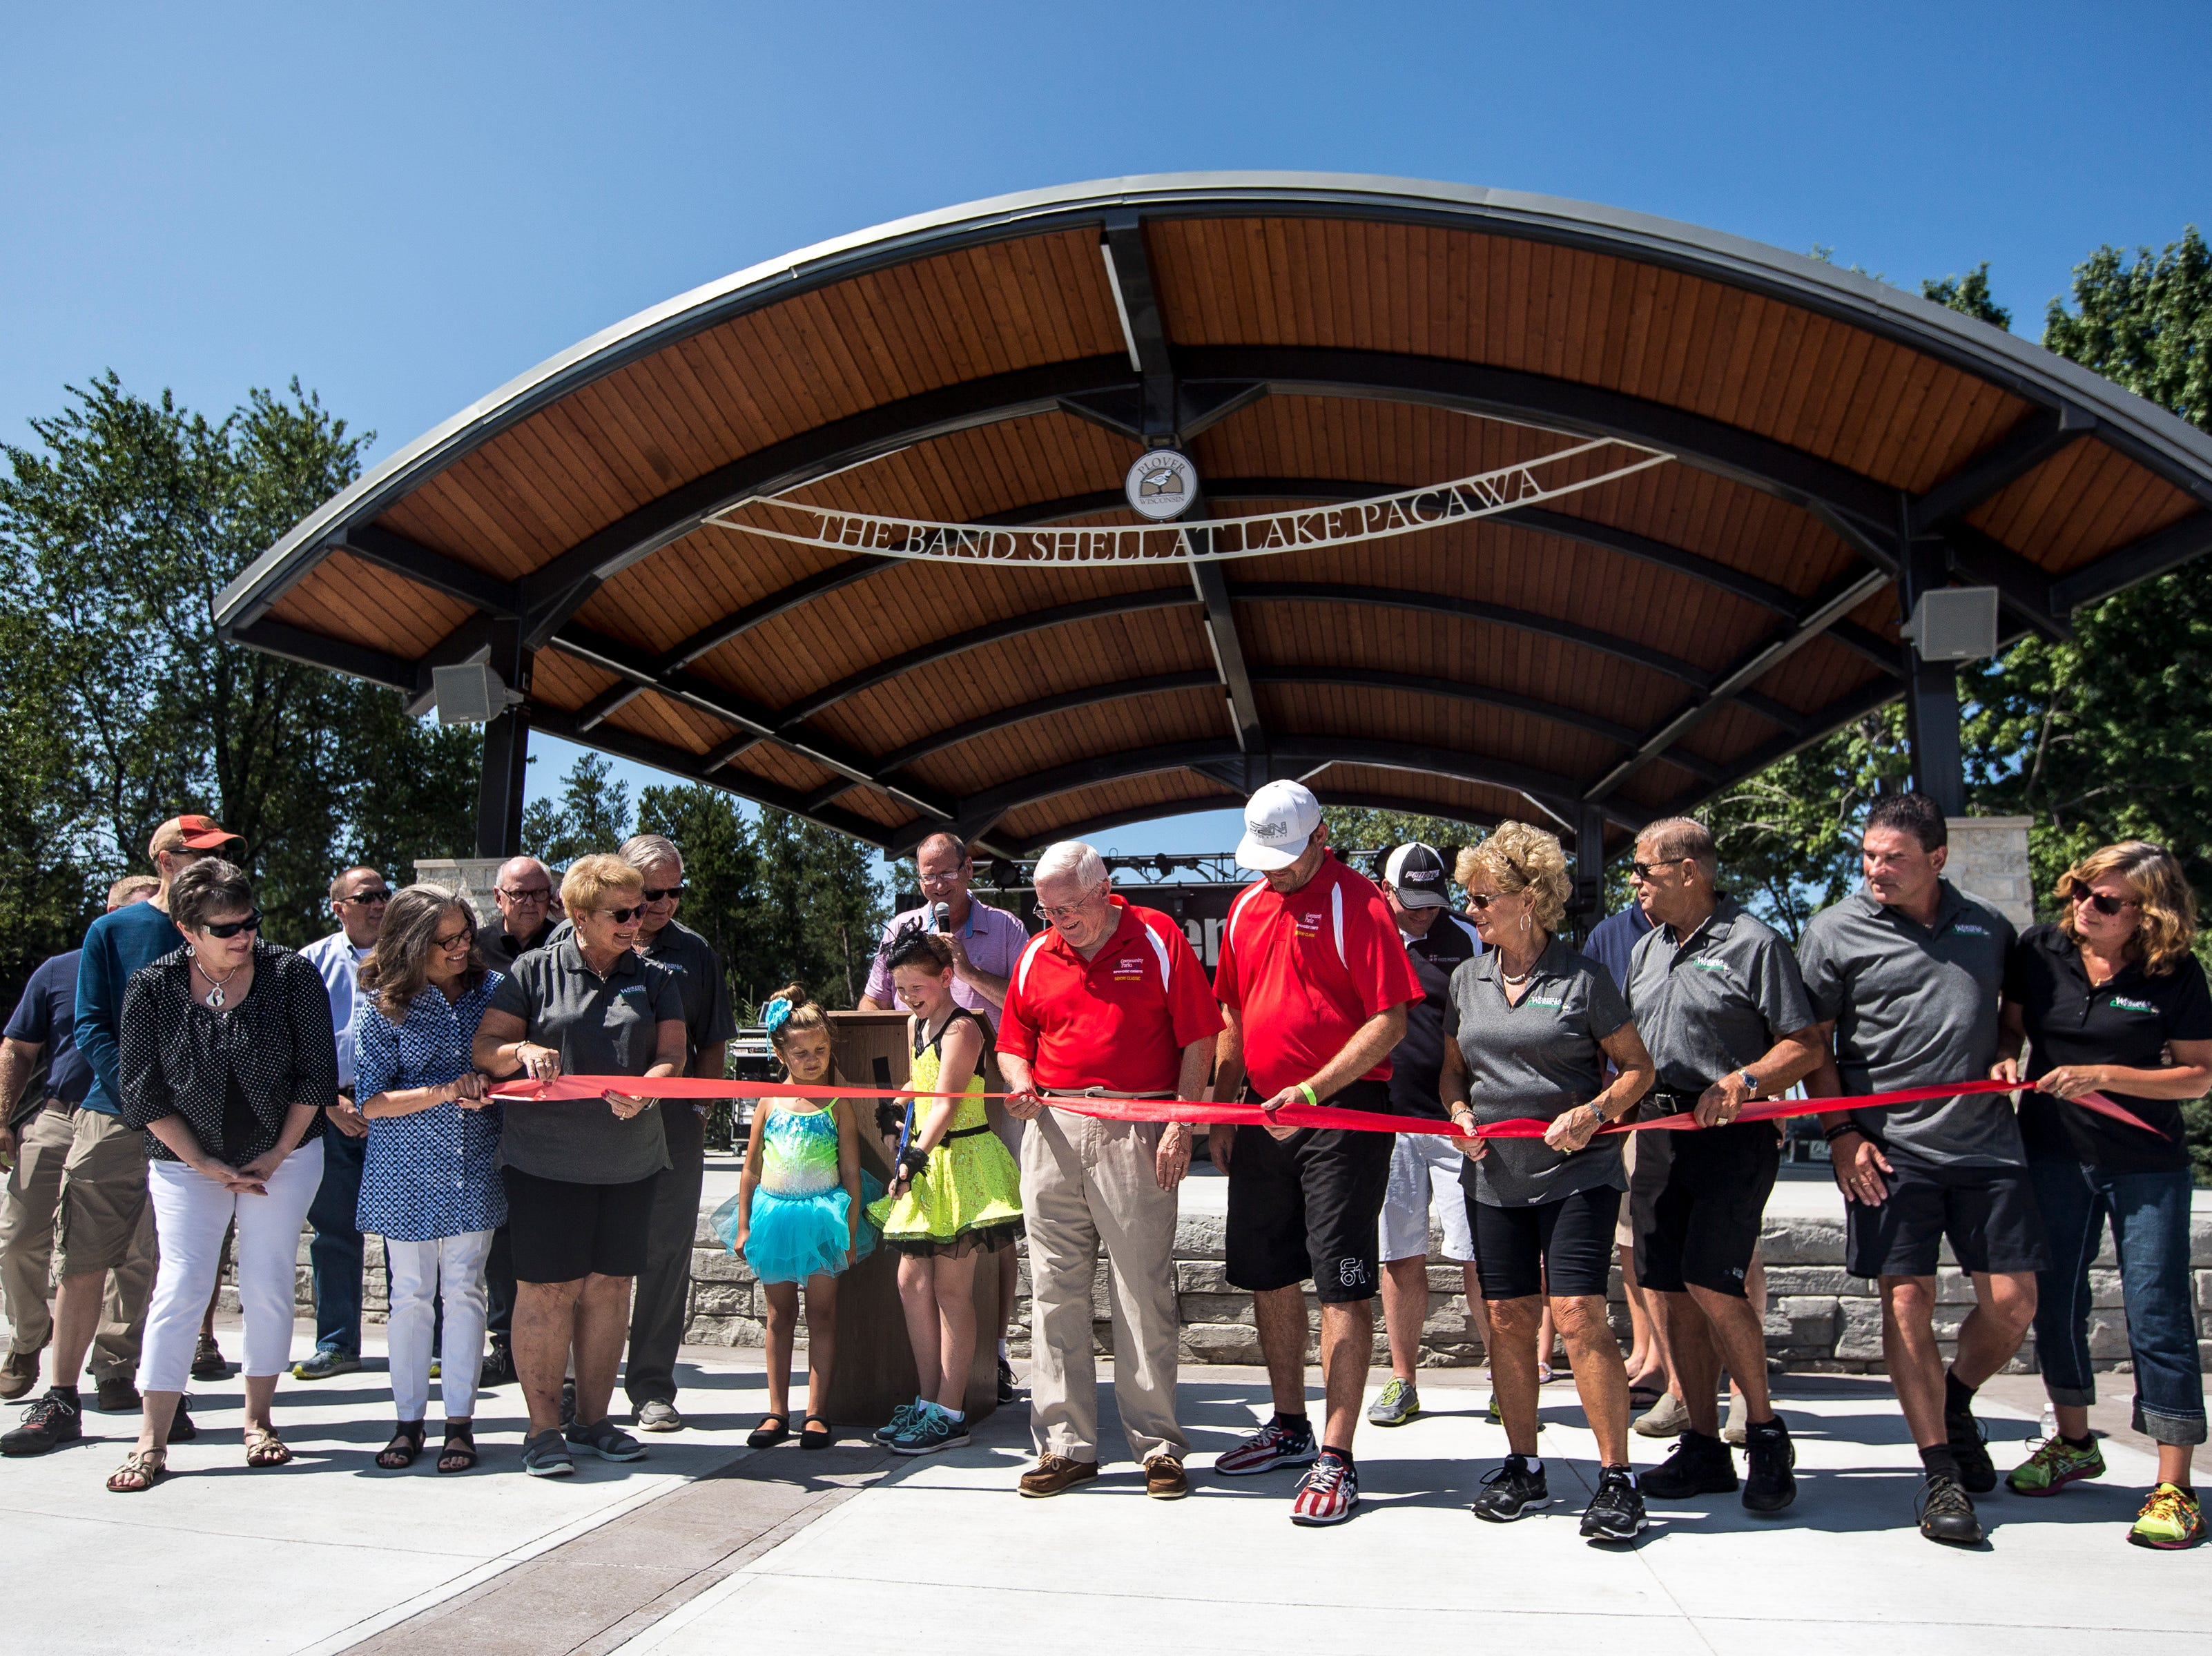 Sponsors prepare to do a ribbon cutting ceremony for the new Band Shell at Lake Pacawa during Celebrate Plover at Lake Pacawa Park in Plover, Wis., July 28, 2018.